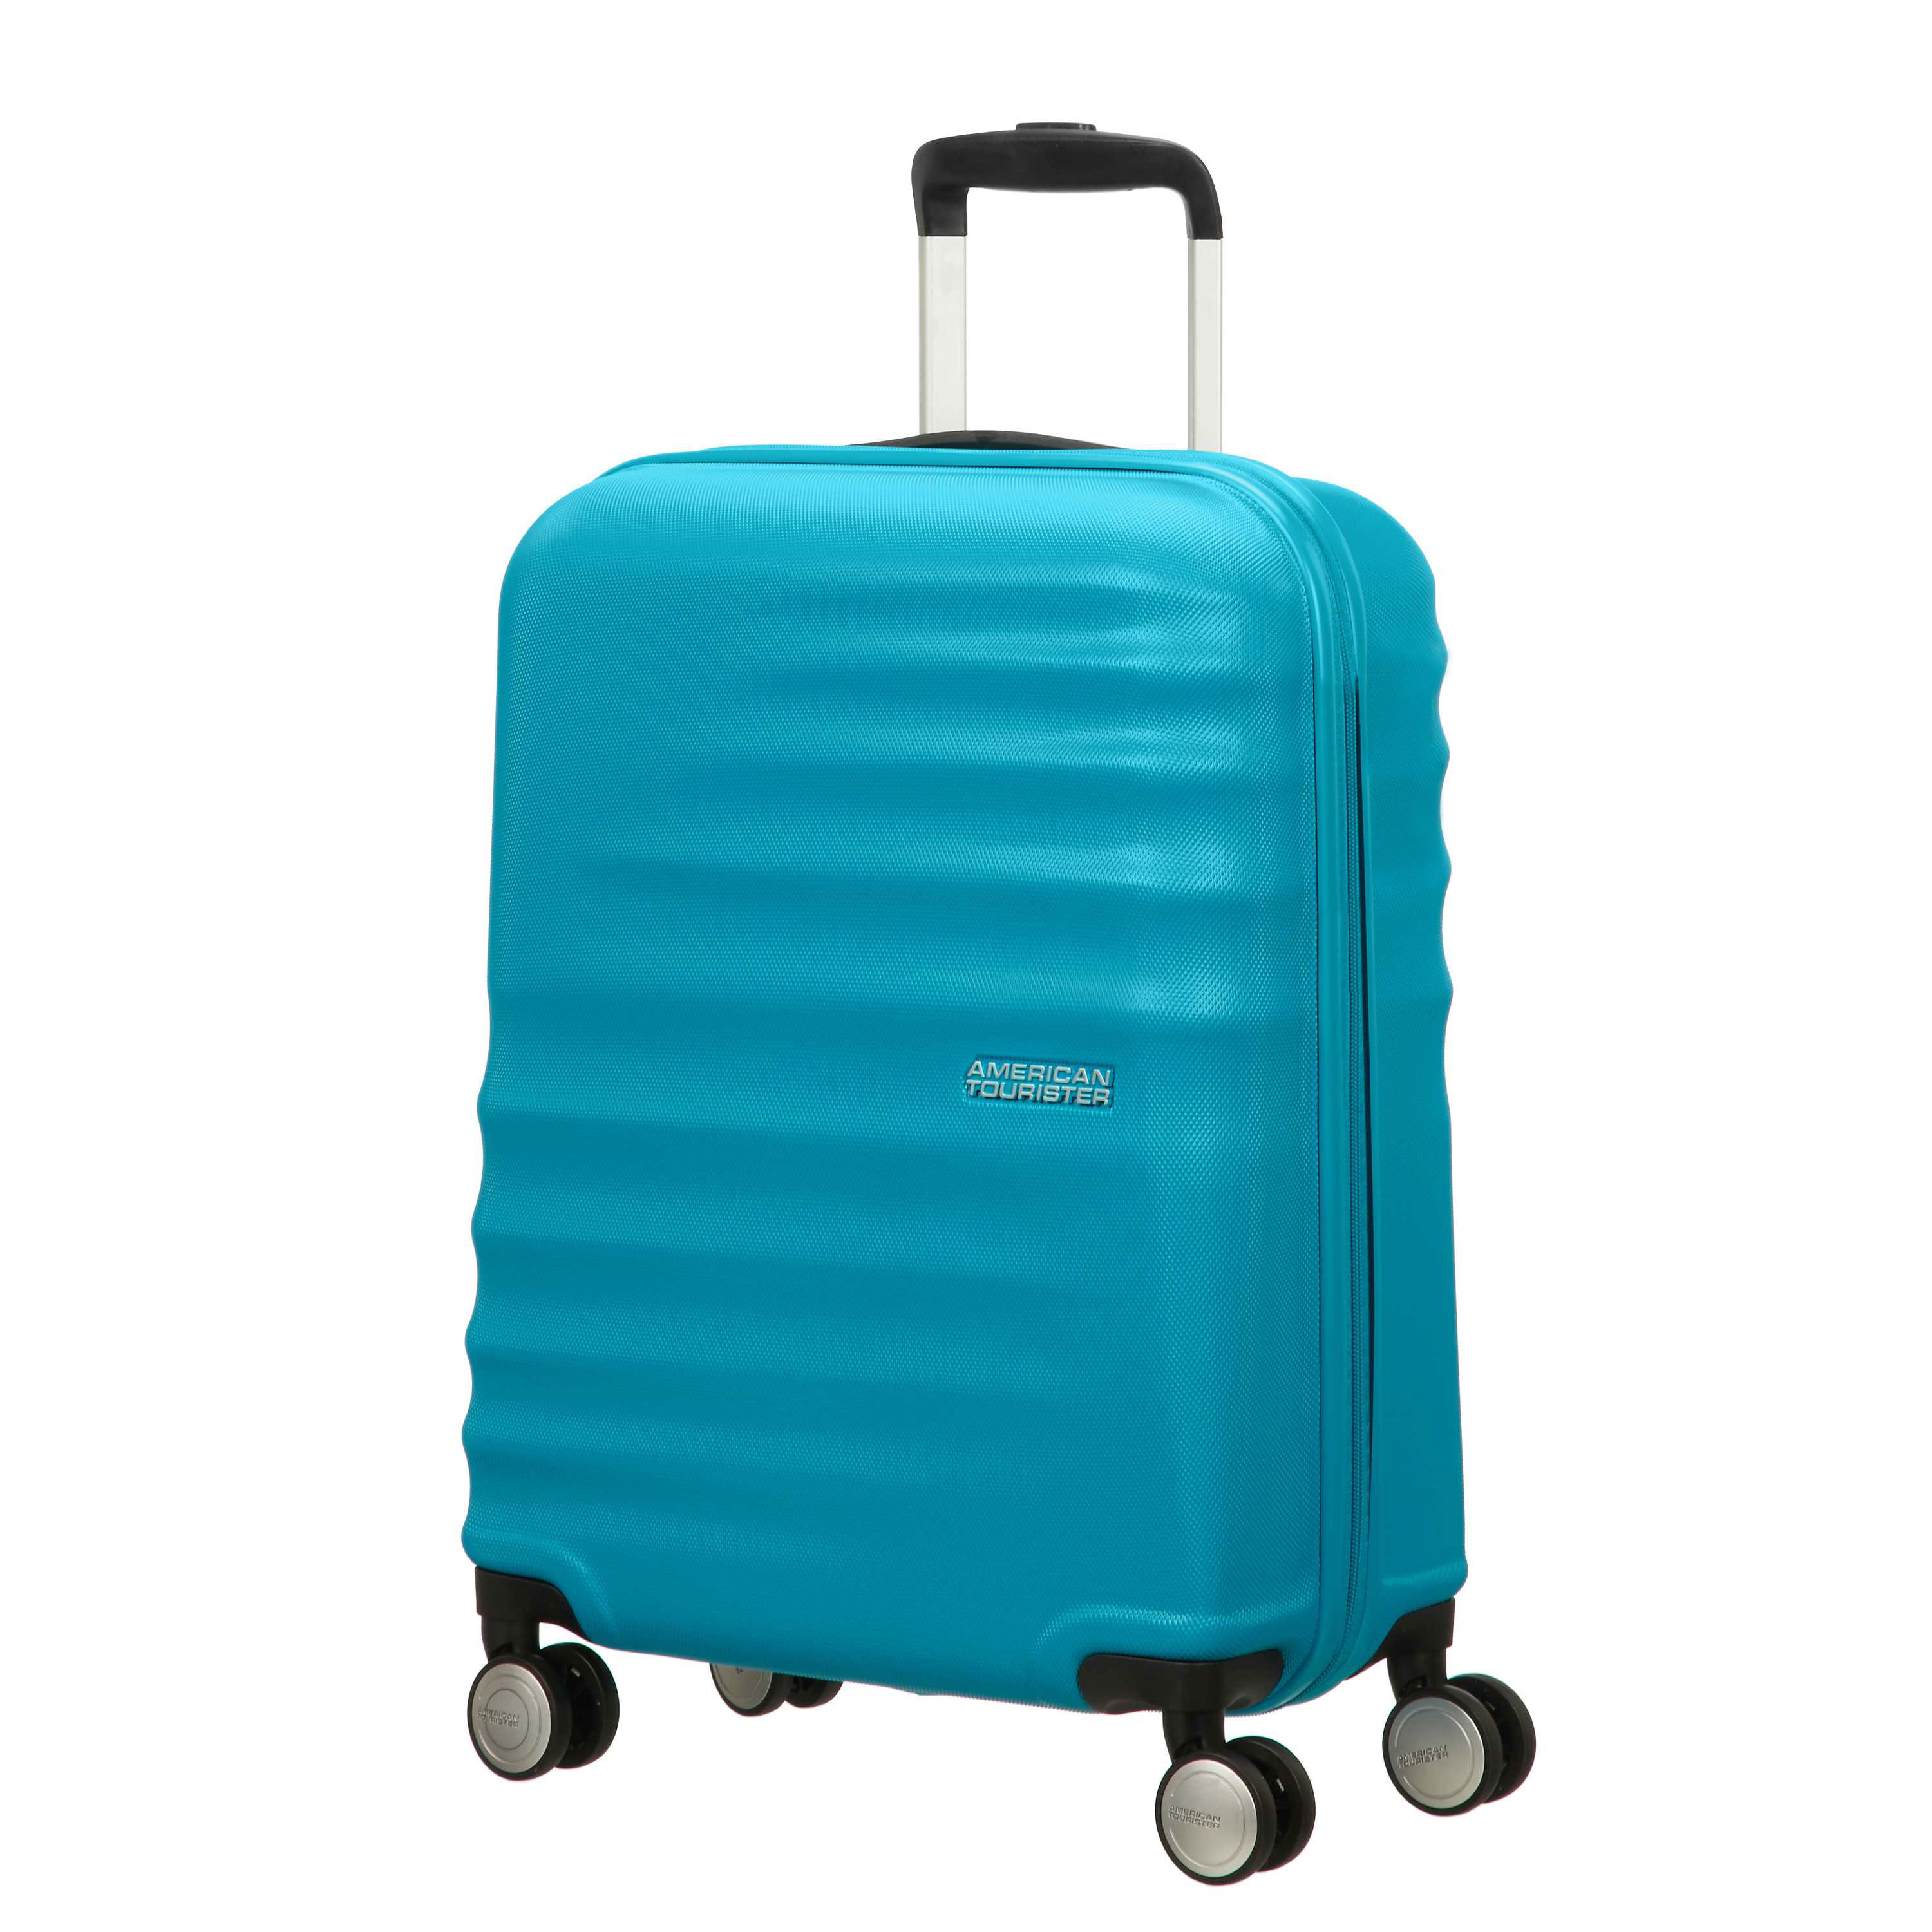 american tourister wavebreaker spinner luggage ebay. Black Bedroom Furniture Sets. Home Design Ideas